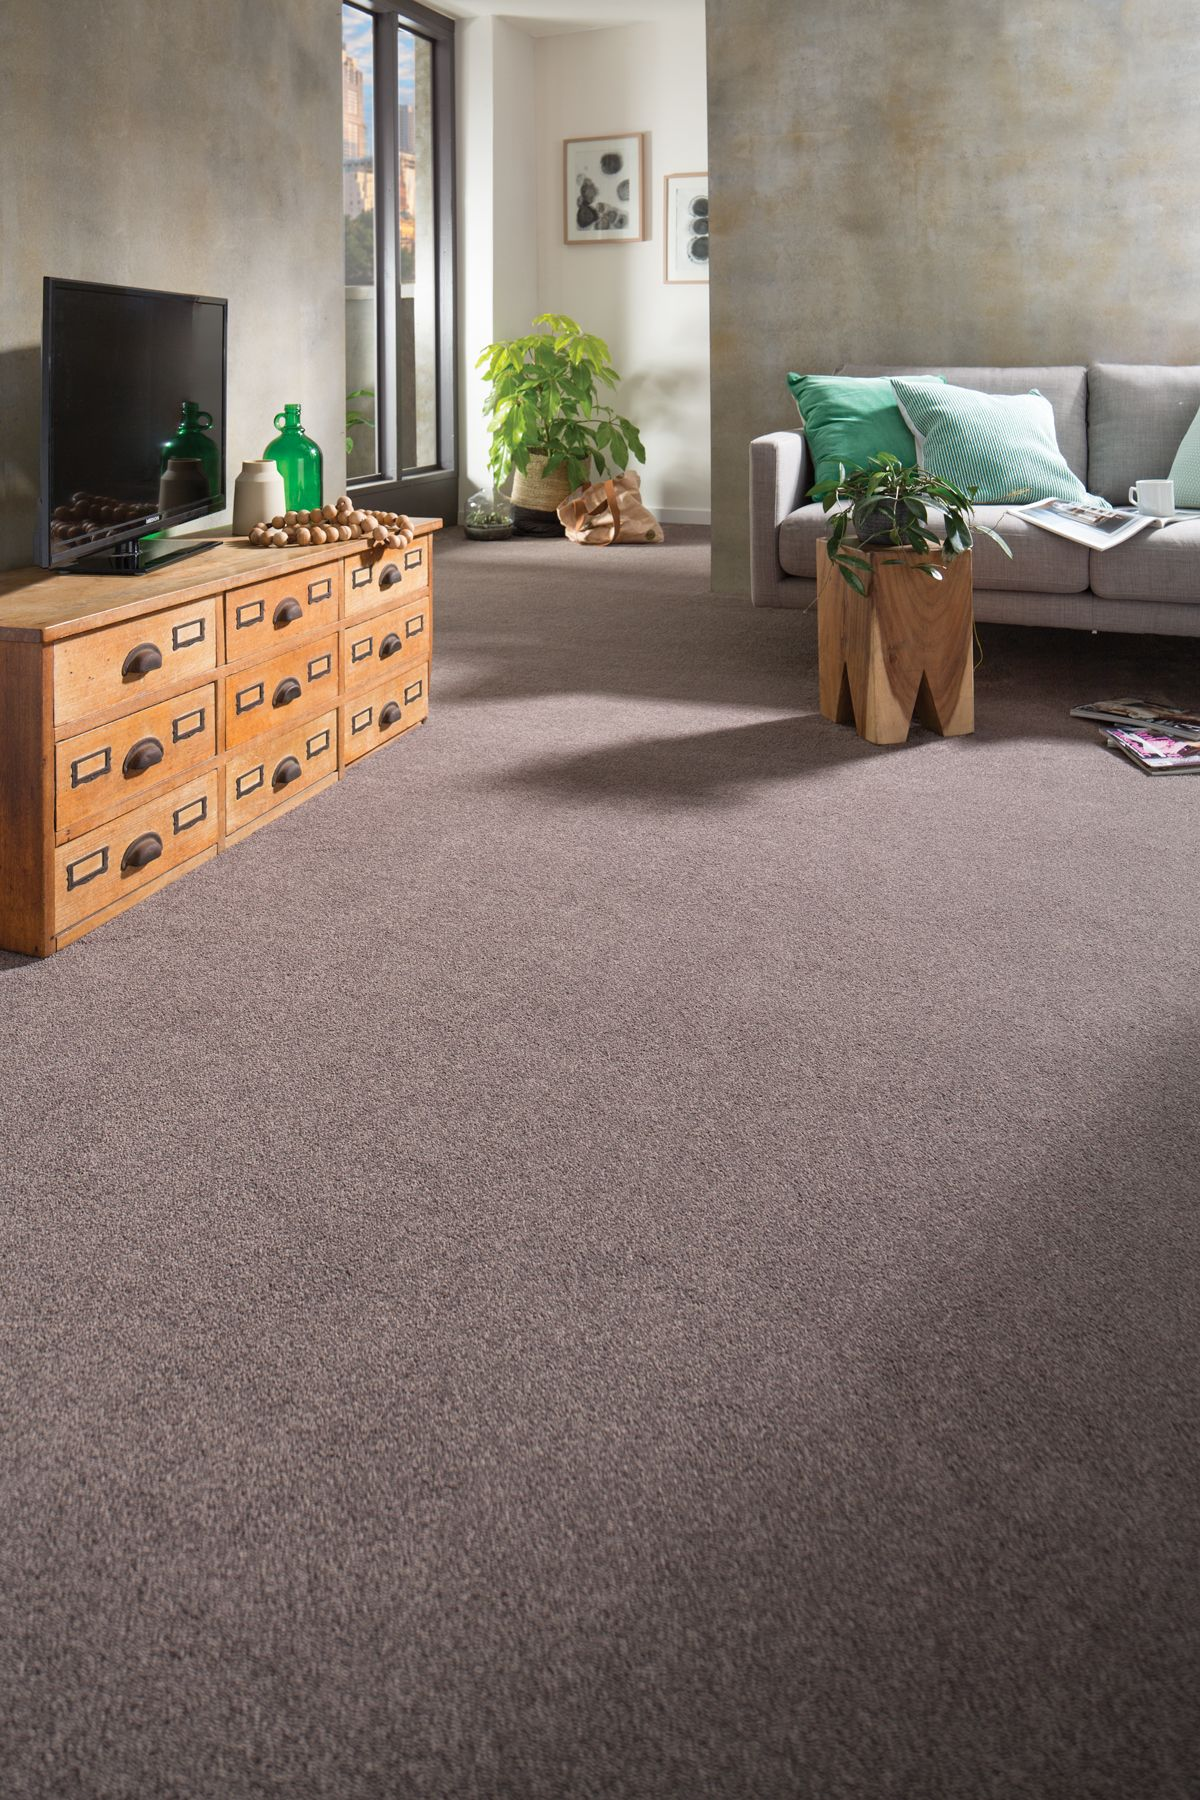 todays time s article to choices today build flooring floors